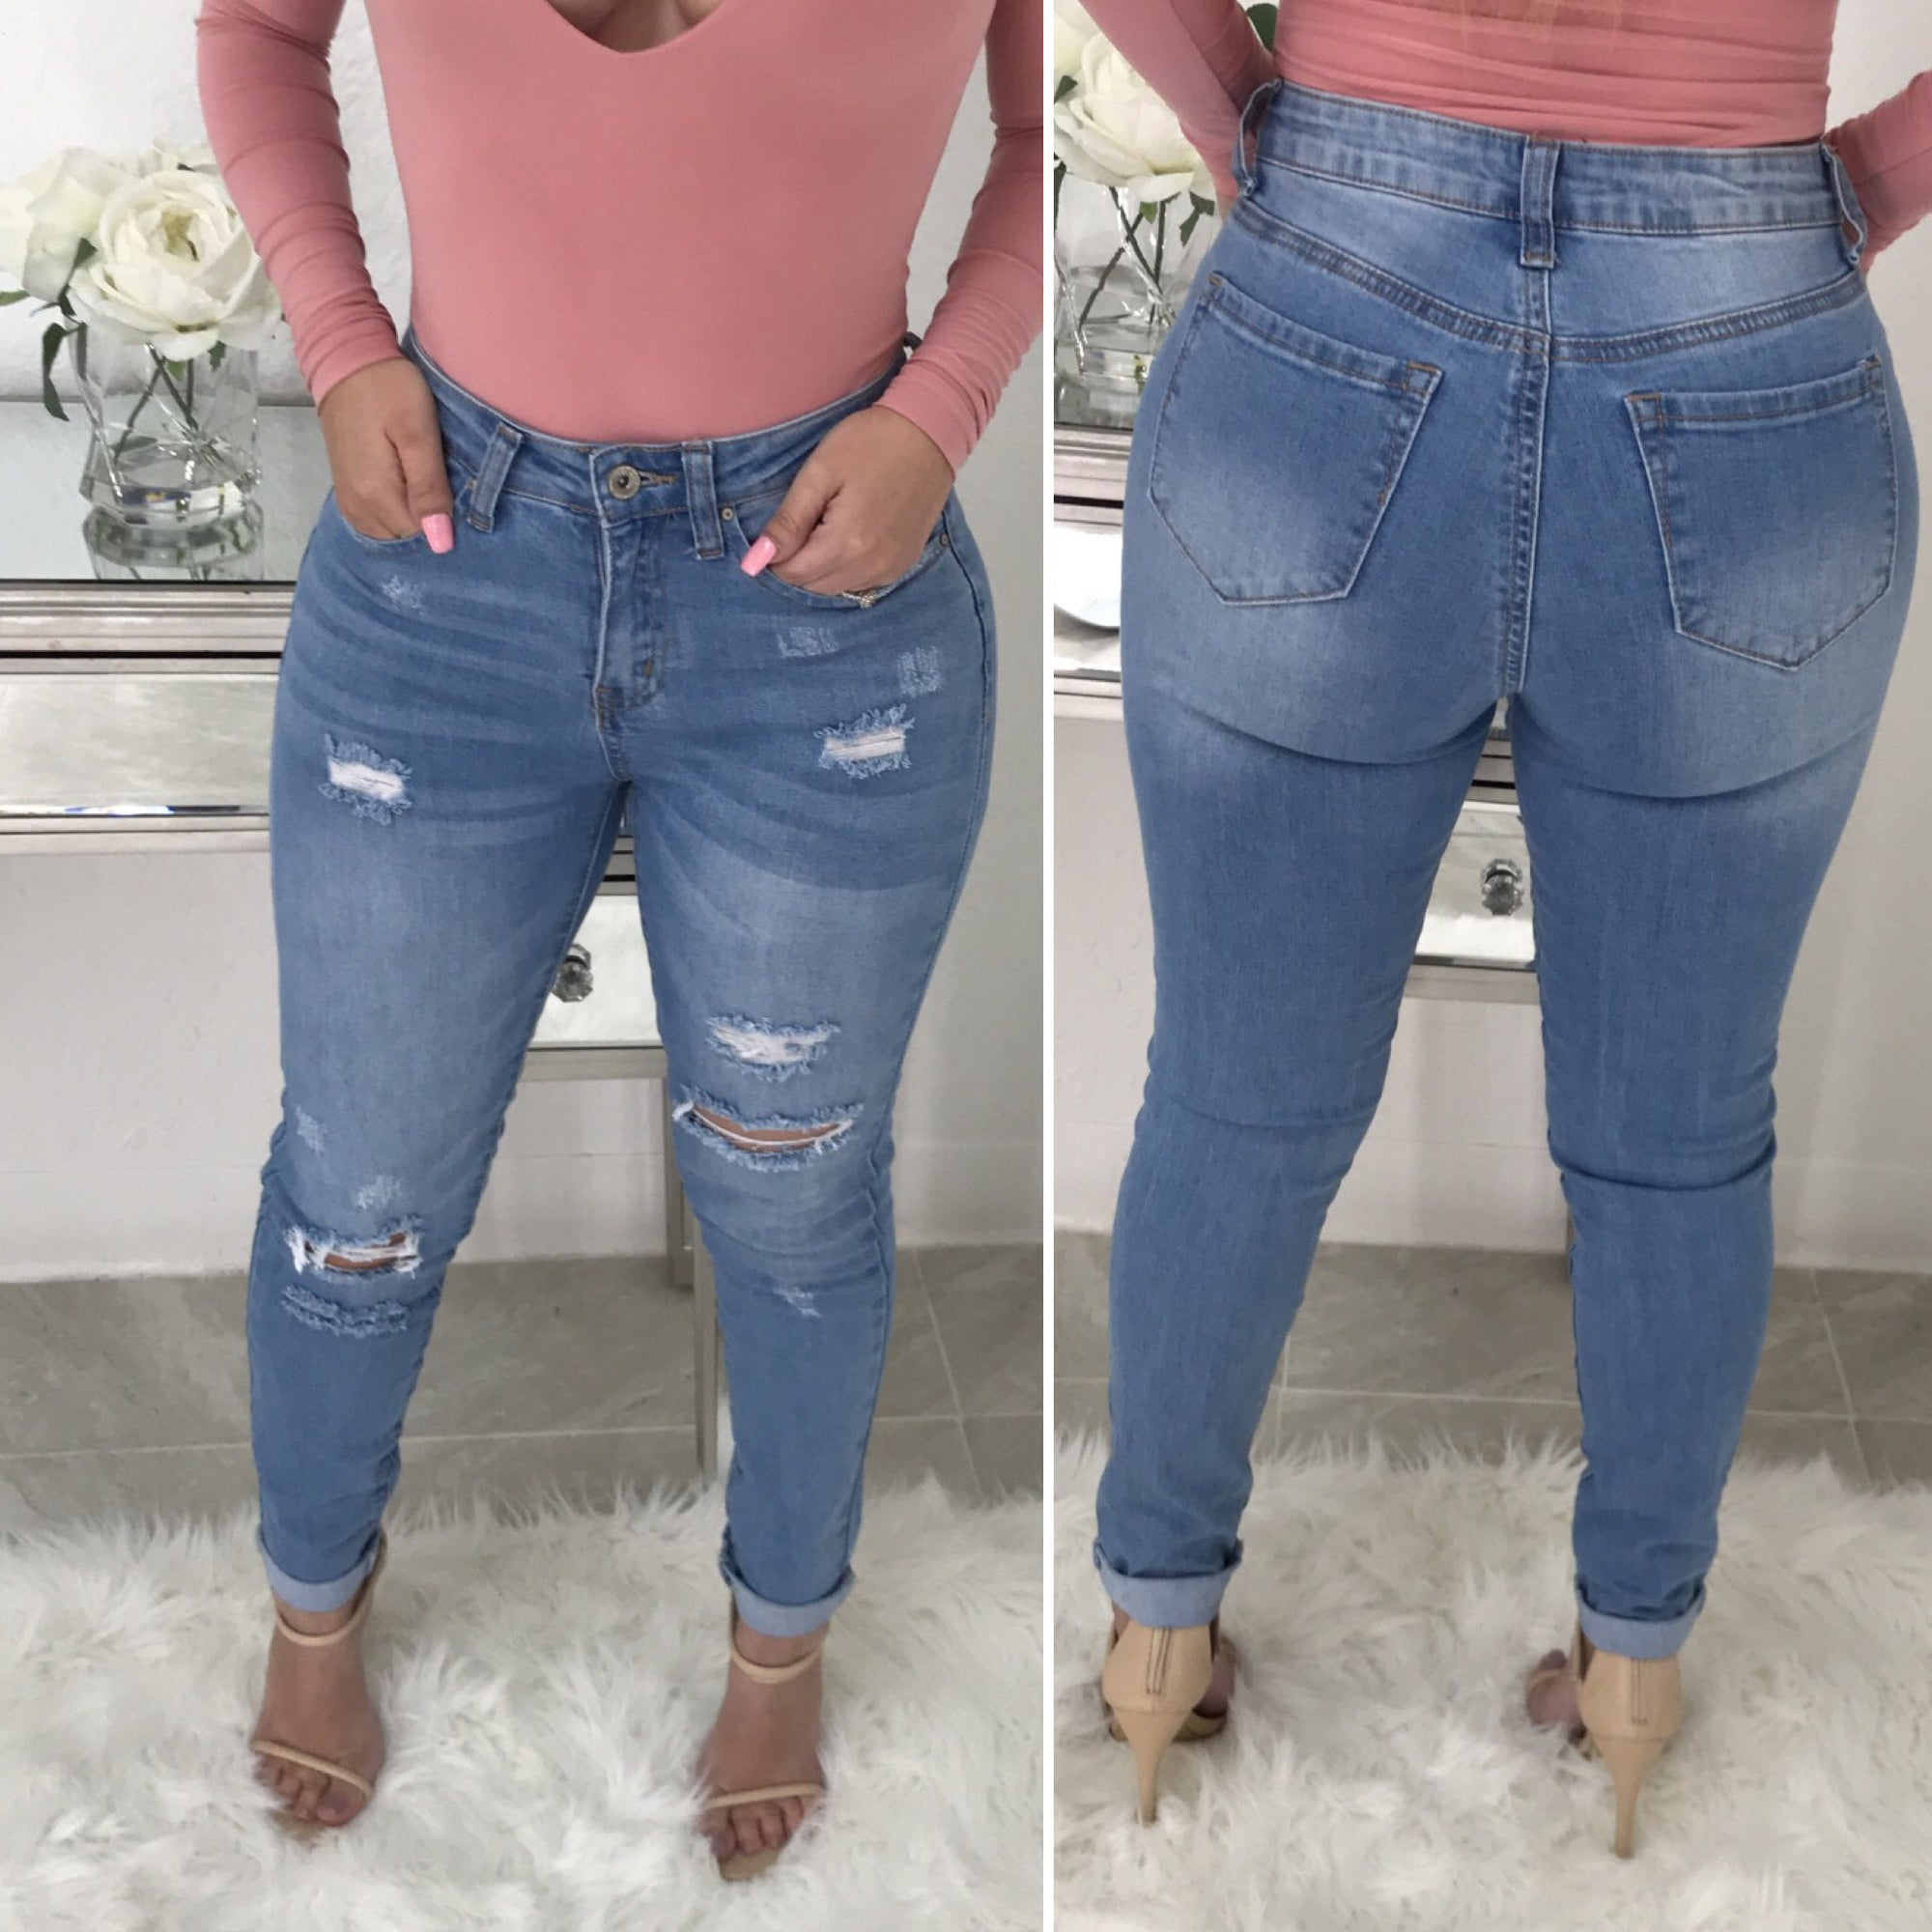 Jeremiah High Waist Jeans (Light Wash)